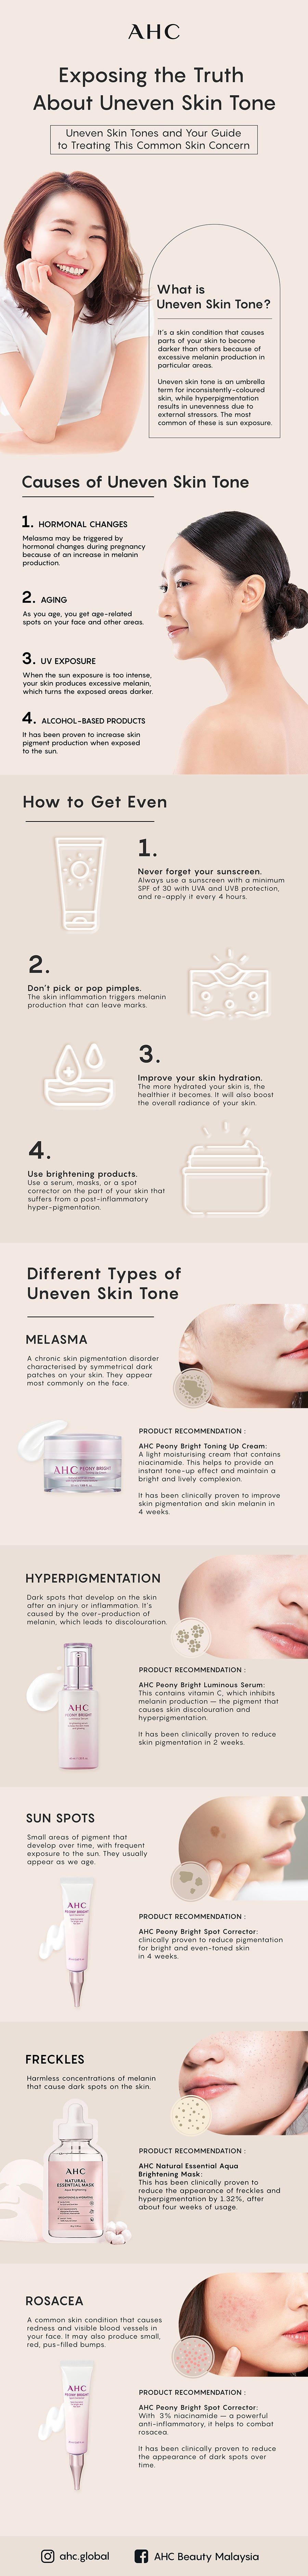 An infographic about exposing the truth about uneven skin tone and how to treat it.